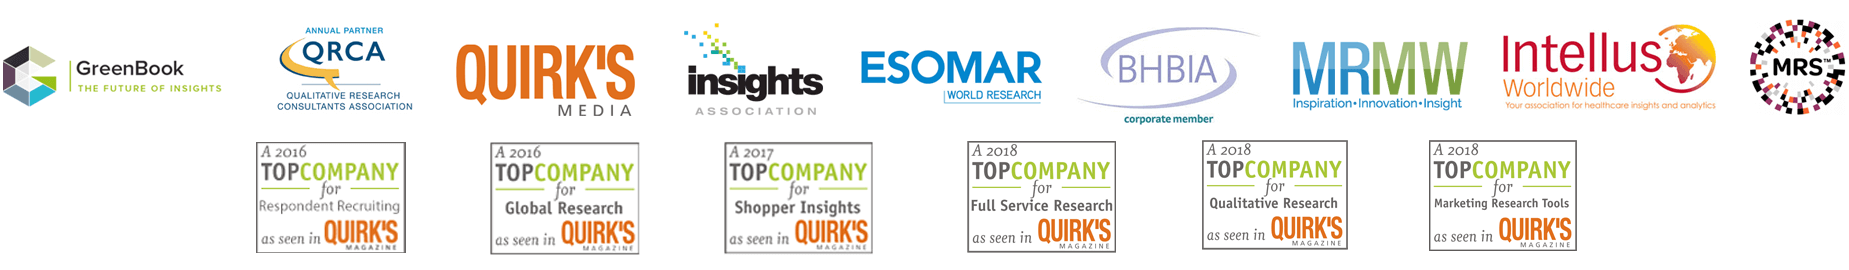 QRCA (Qualitative Research Consultants Association) | MRA | MRMW (Inspirational • Innovation • Insights) | MRS | Quirk's Media | Esomar World Research | BHBIA Corporate Member | GreenBook Directory